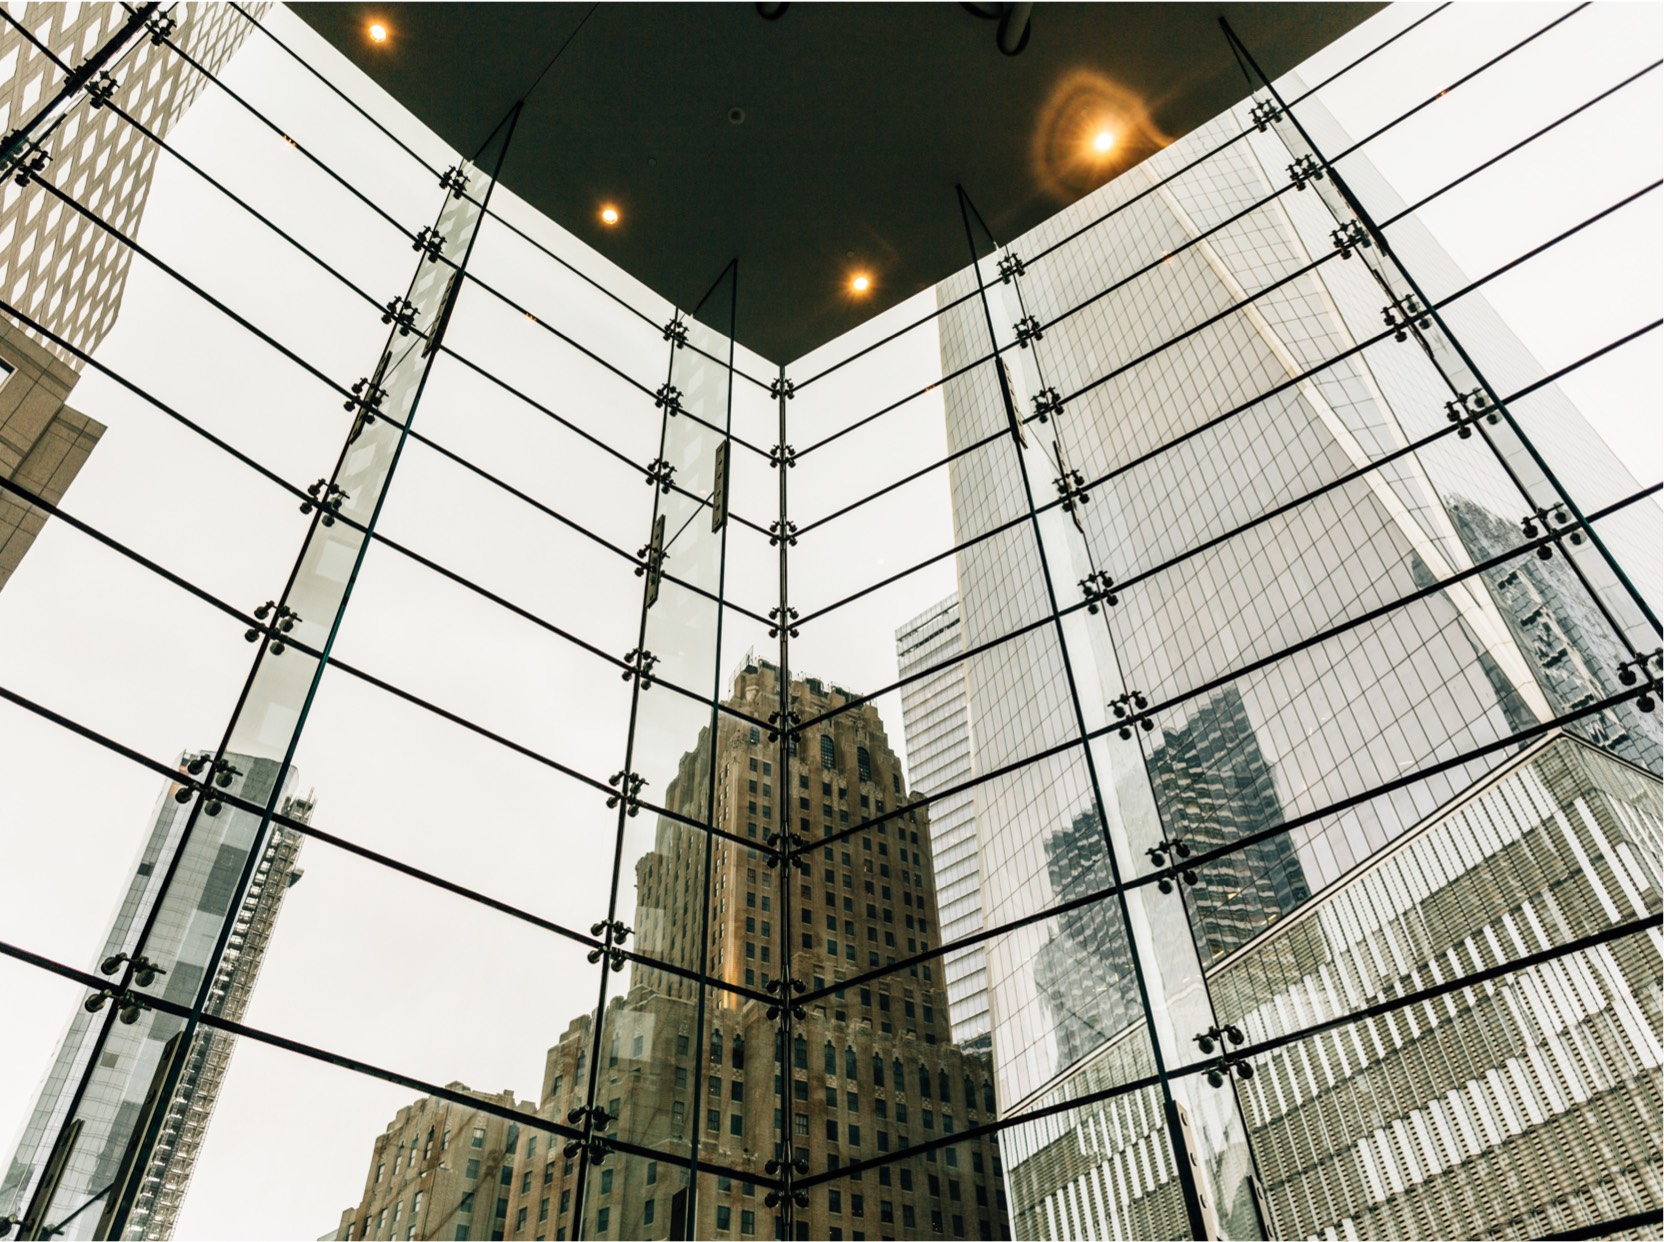 Reflections of buildings on glass